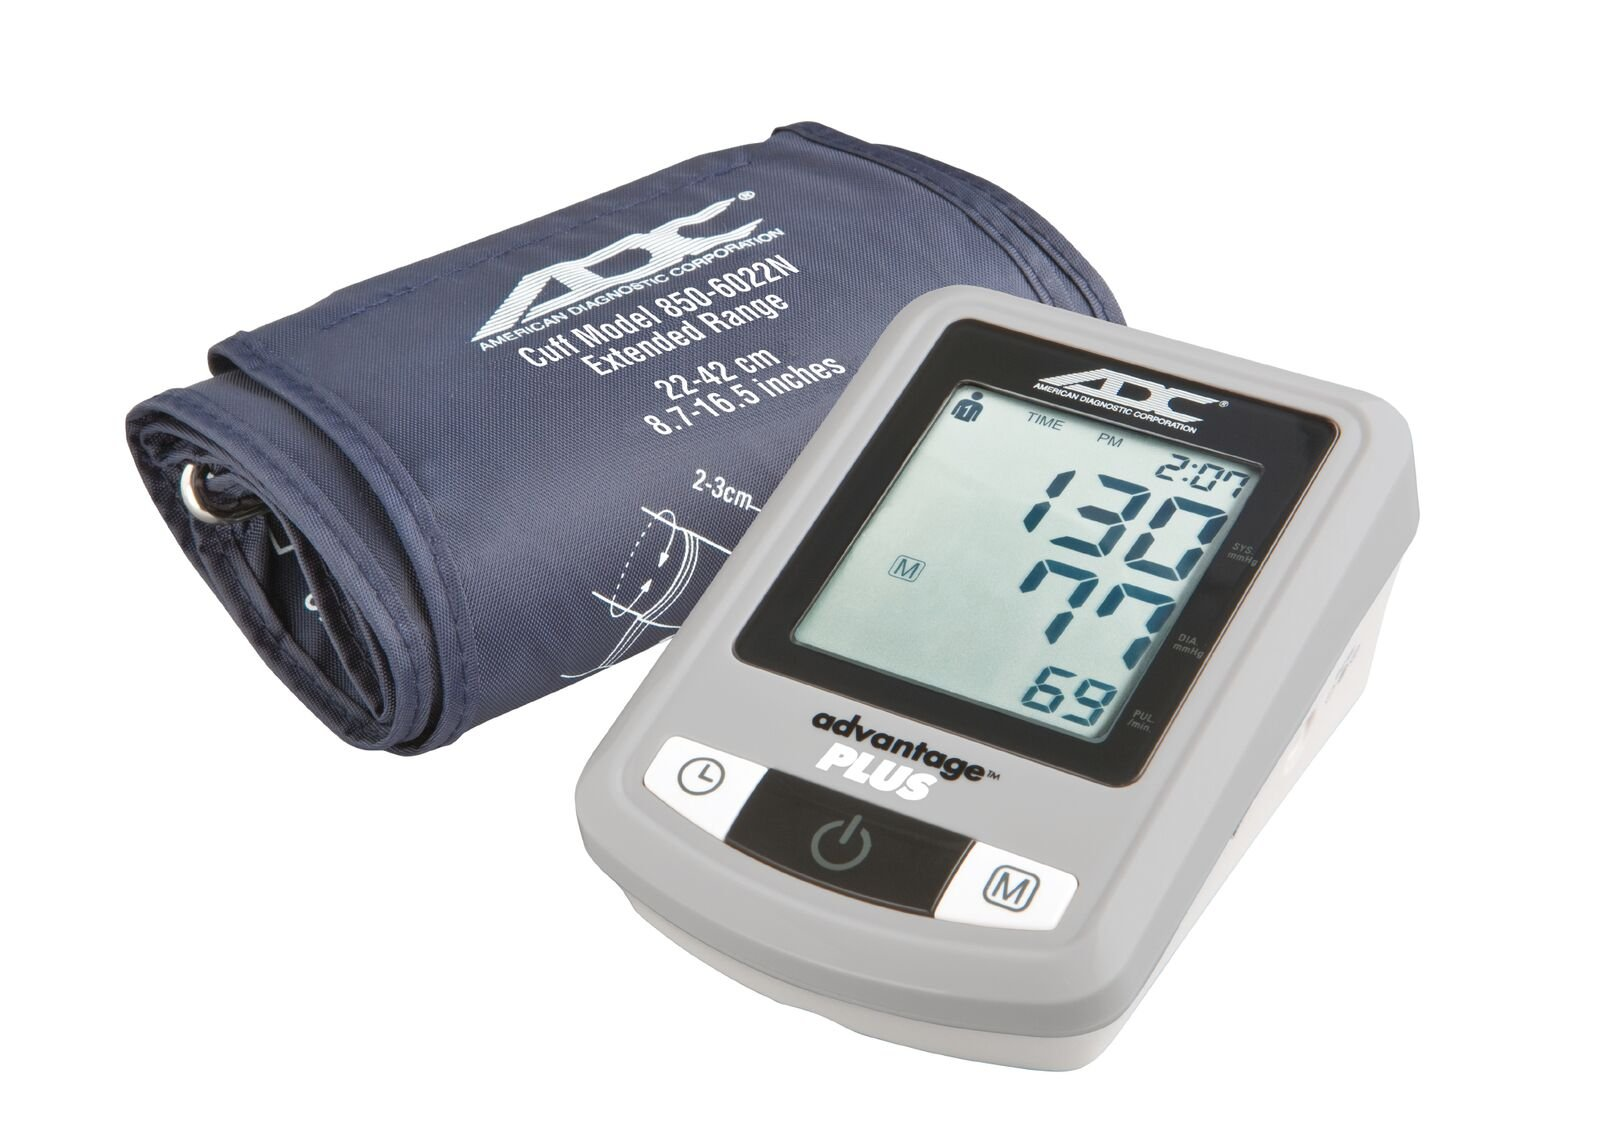 ADC Advantage Plus 6022N Automatic Digital Blood Pressure Monitor with Storage Case, BHS AA Rated, Wide-Range Adult Navy Upper-Arm BP Cuff